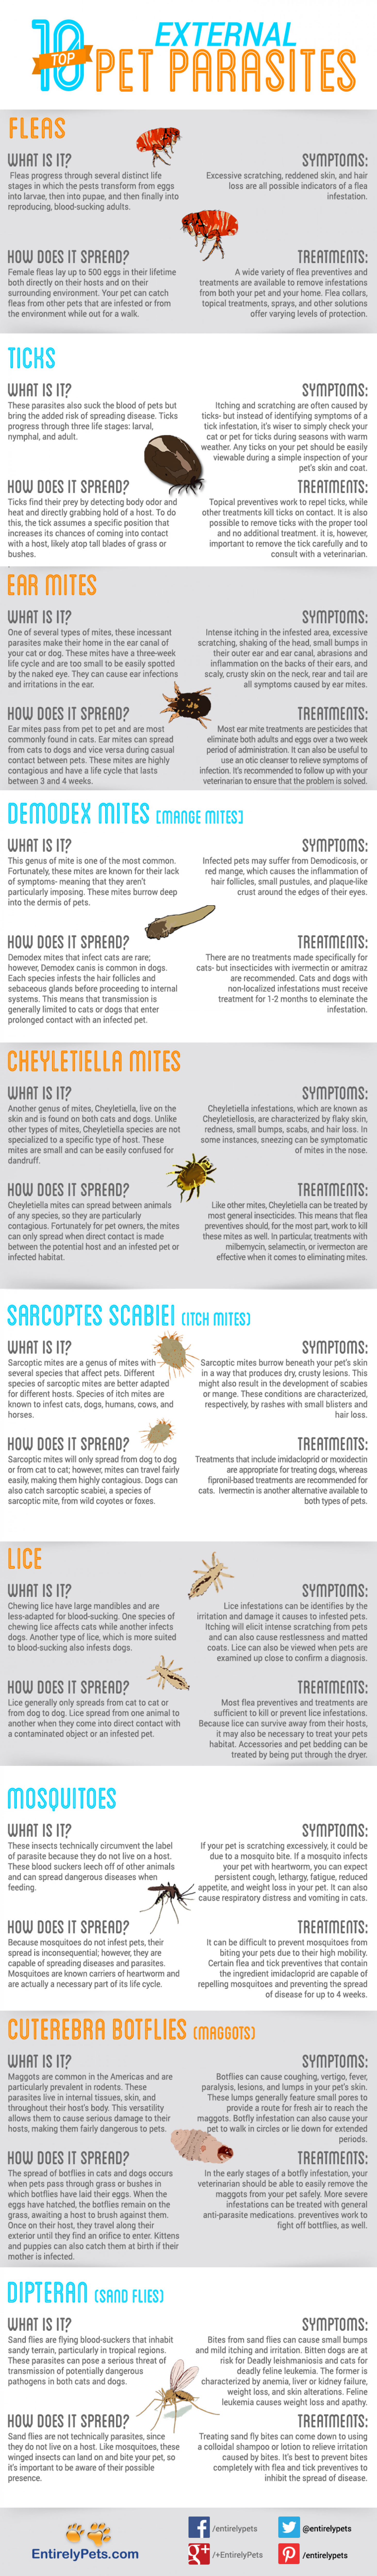 Top 10 External Pet Parasites Infographic